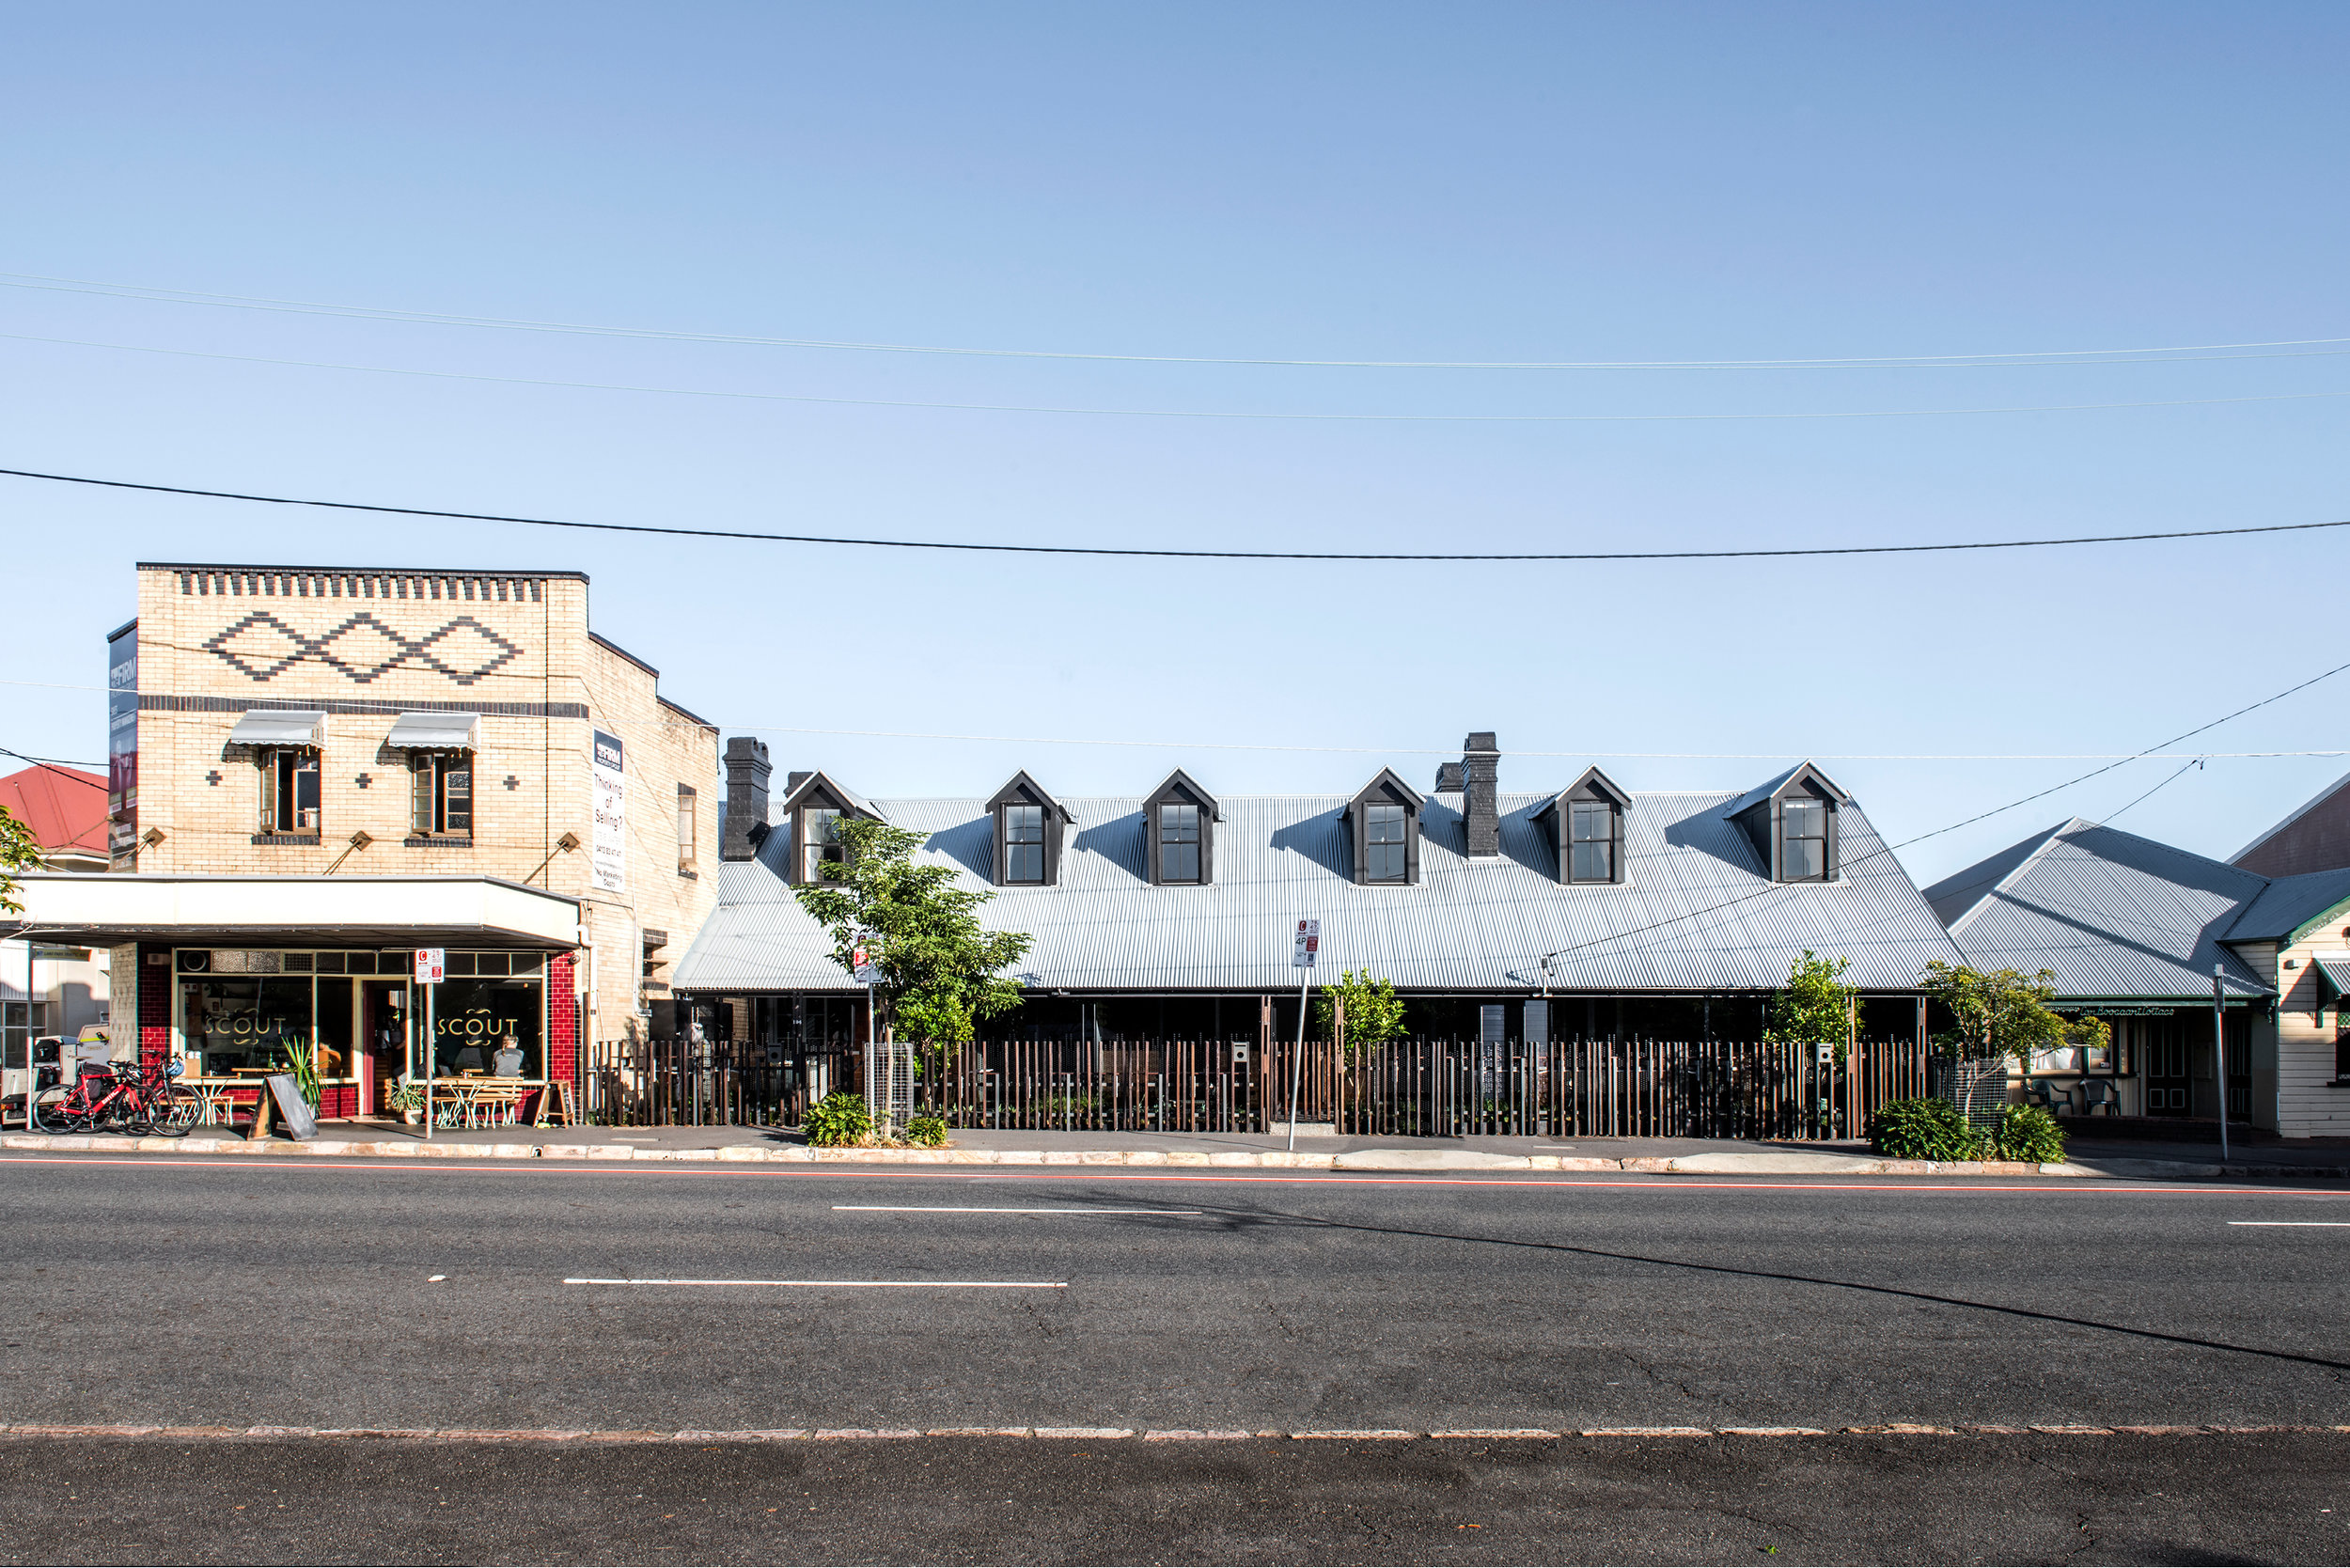 Heritage building ensemble seen from Petrie Terrace